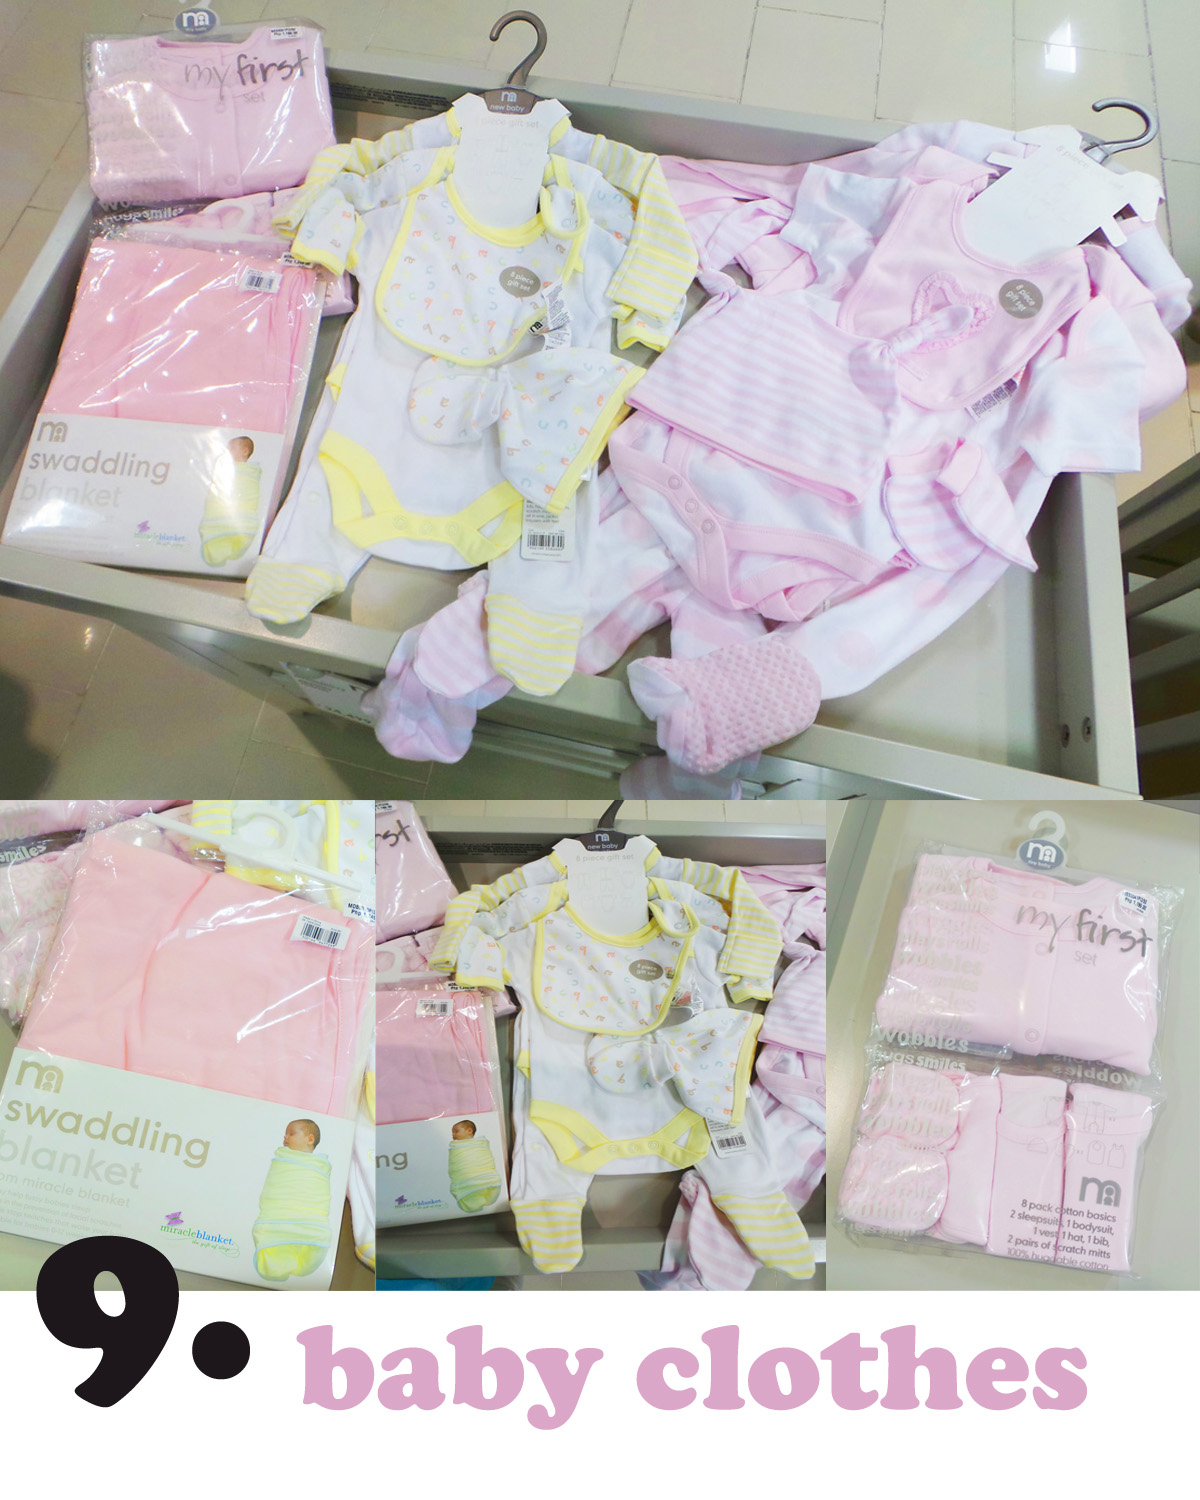 Baby crib for sale manila - This Is Really The Only Thing I Know How To Buy Because I Have A Lot Of Inaanaks And Baby Clothes Always Make The Cutest Gifts The Best Deals Is In Buying